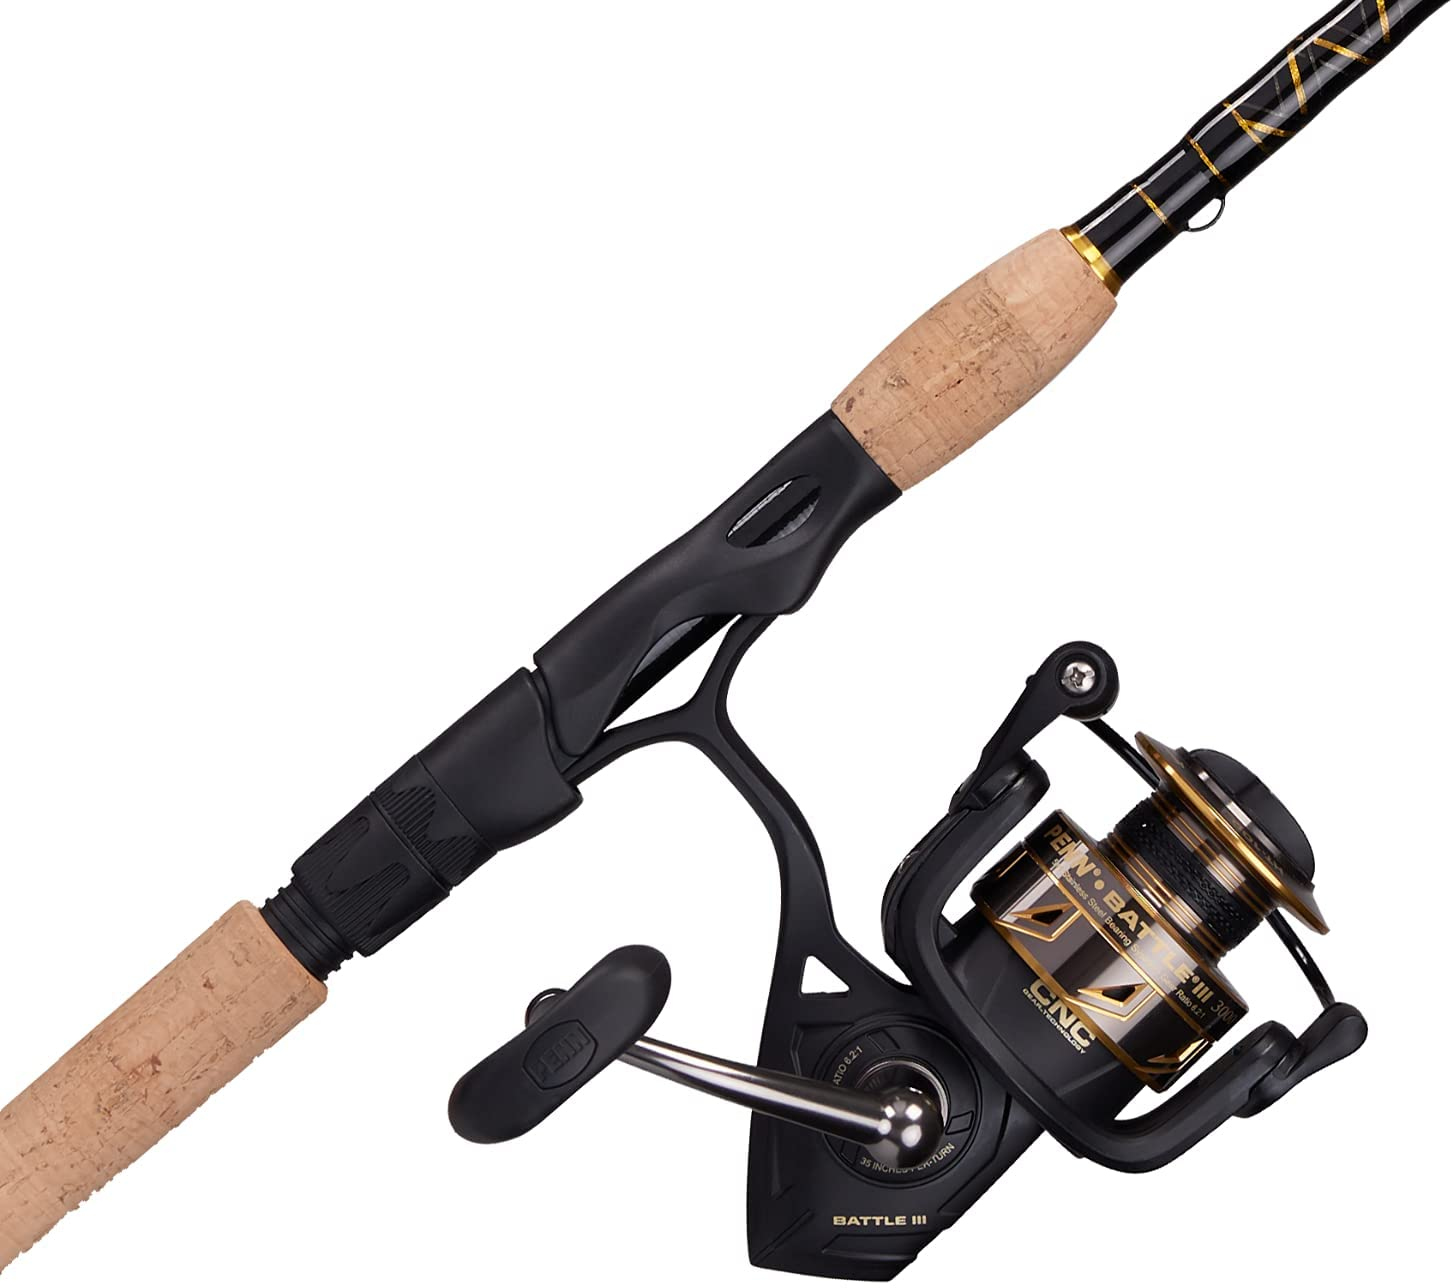 PENN Battle Spinning Reel and Ranking TOP6 Rod Fishing OFFicial mail order Combo